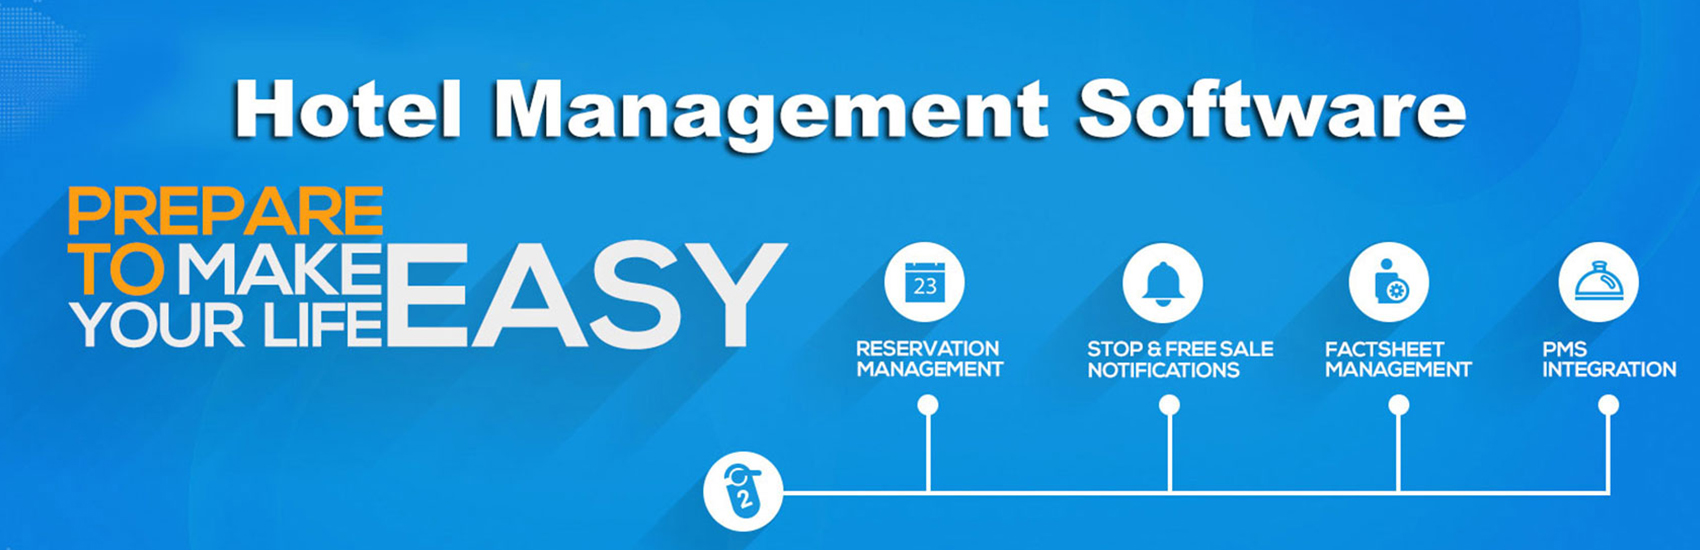 Hotel-managment-software